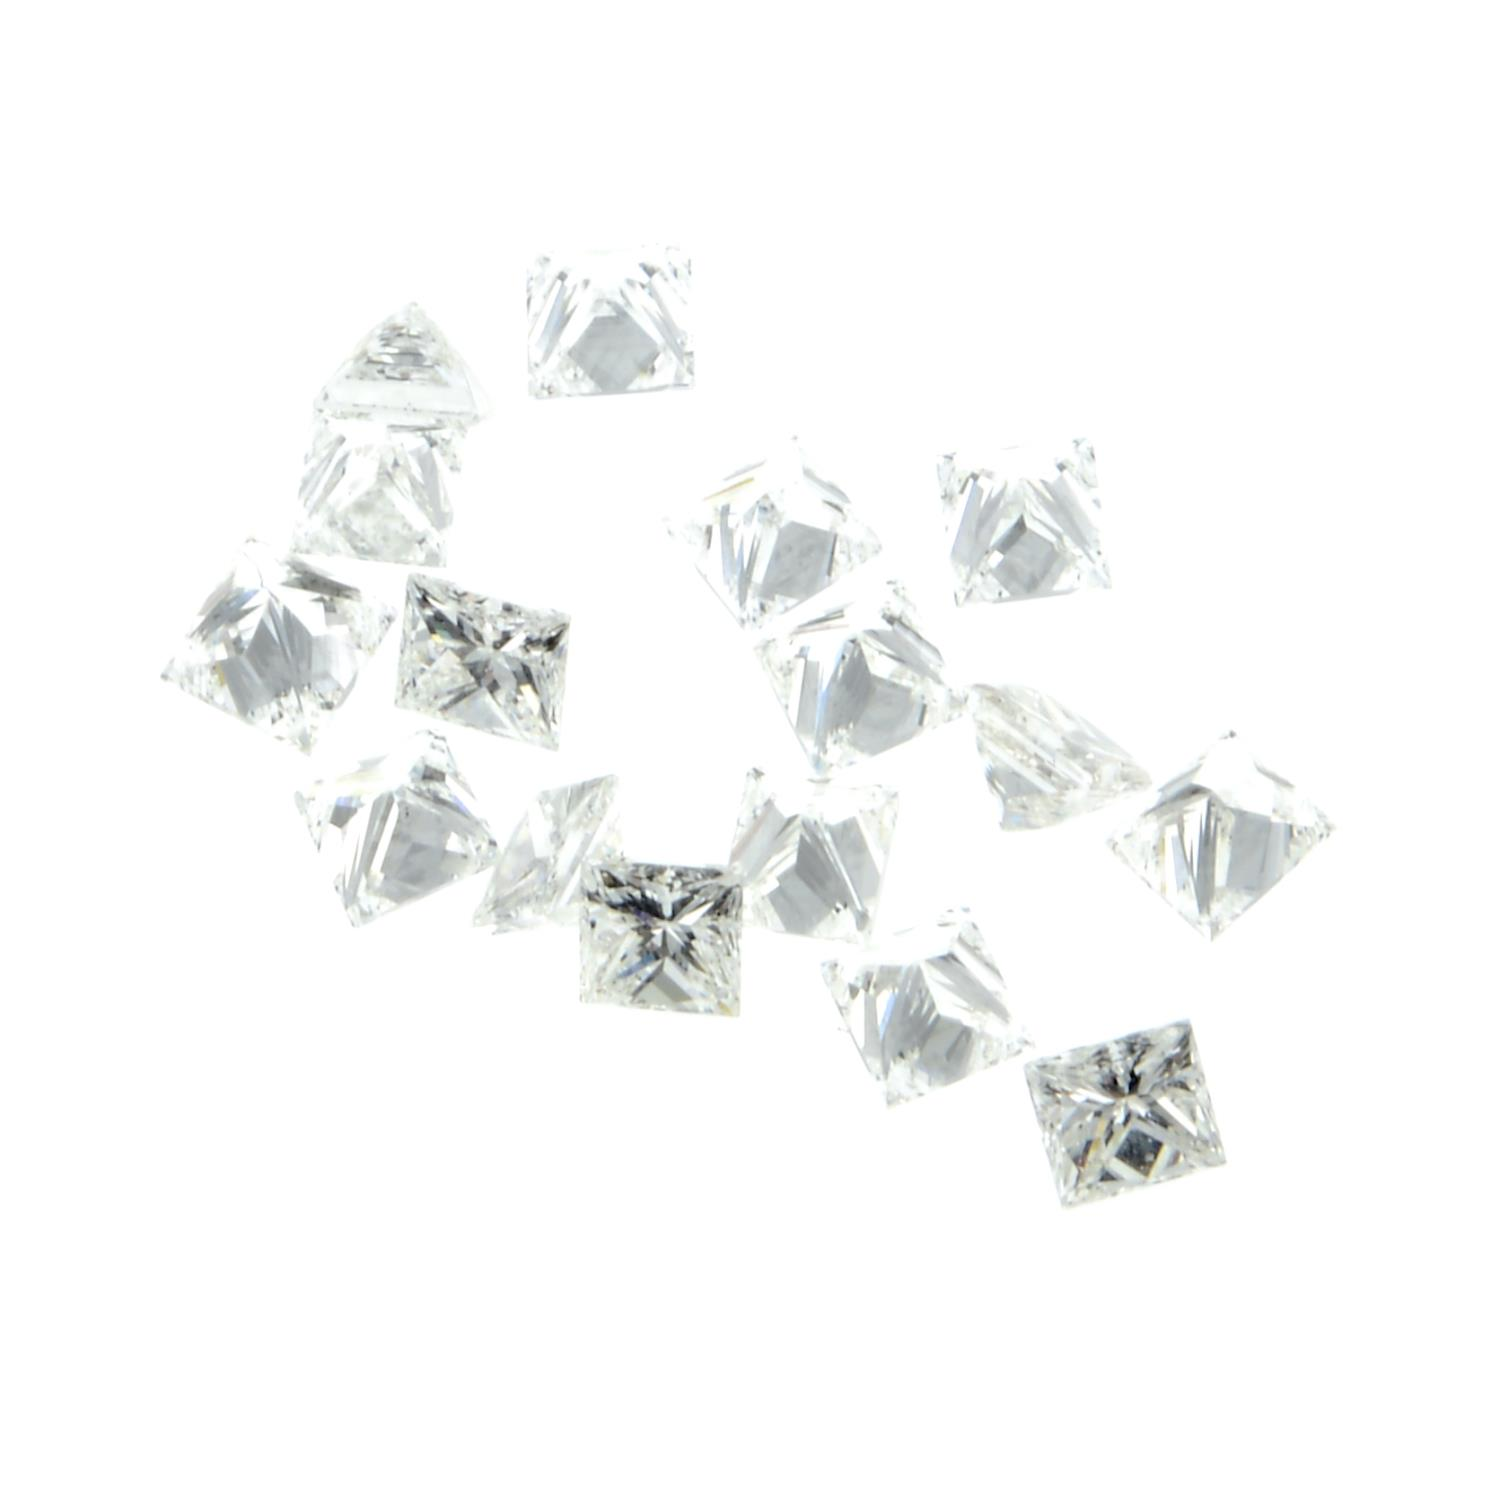 A selection of square-cut loose diamonds. - Image 2 of 2